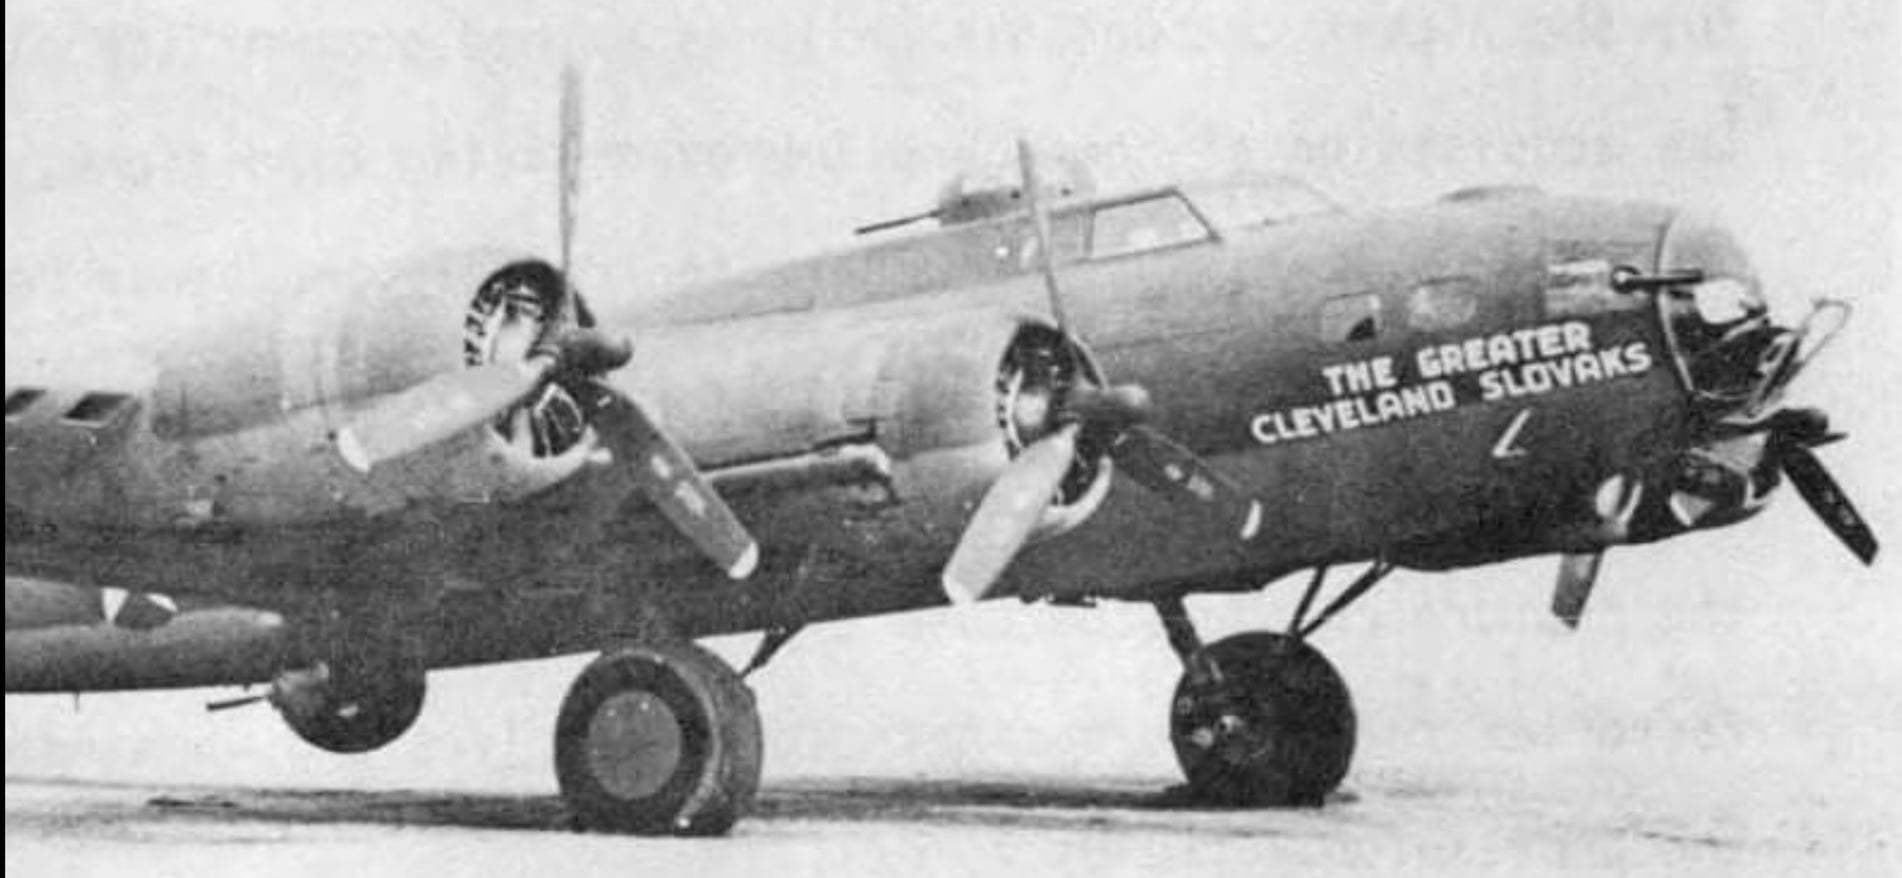 B-17F 'The Greater Cleveland Slovaks'